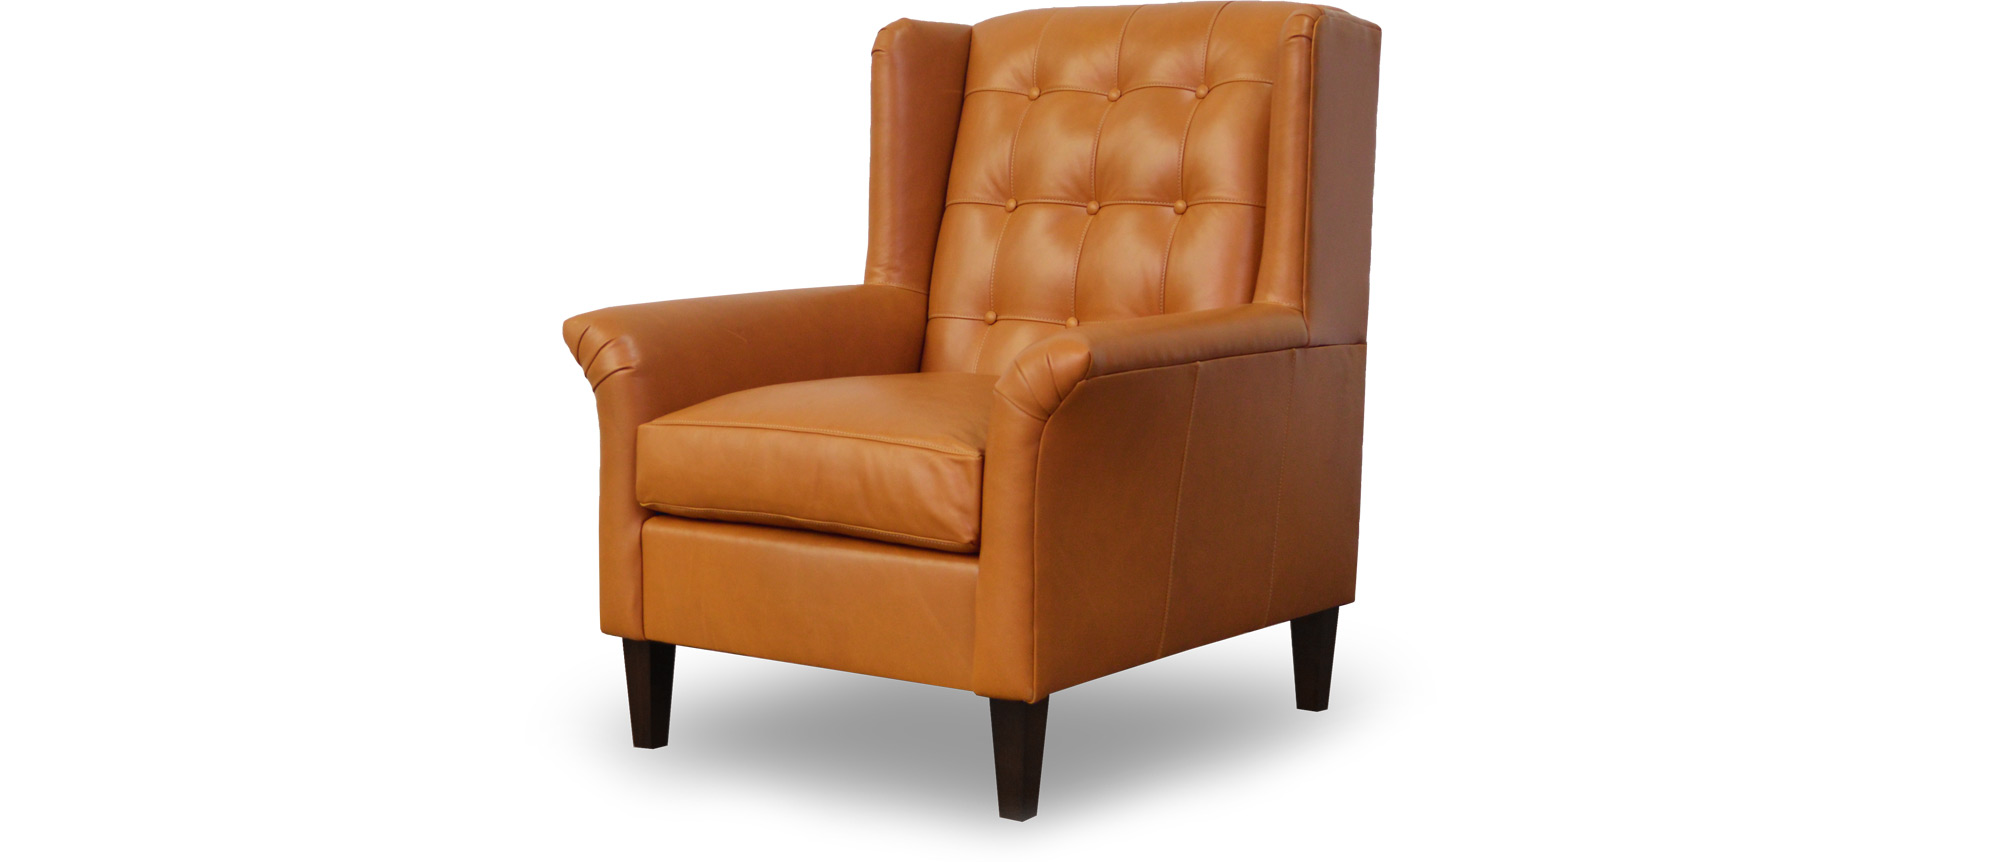 Pops Tufted Modern Wingback Chair Roger Chris